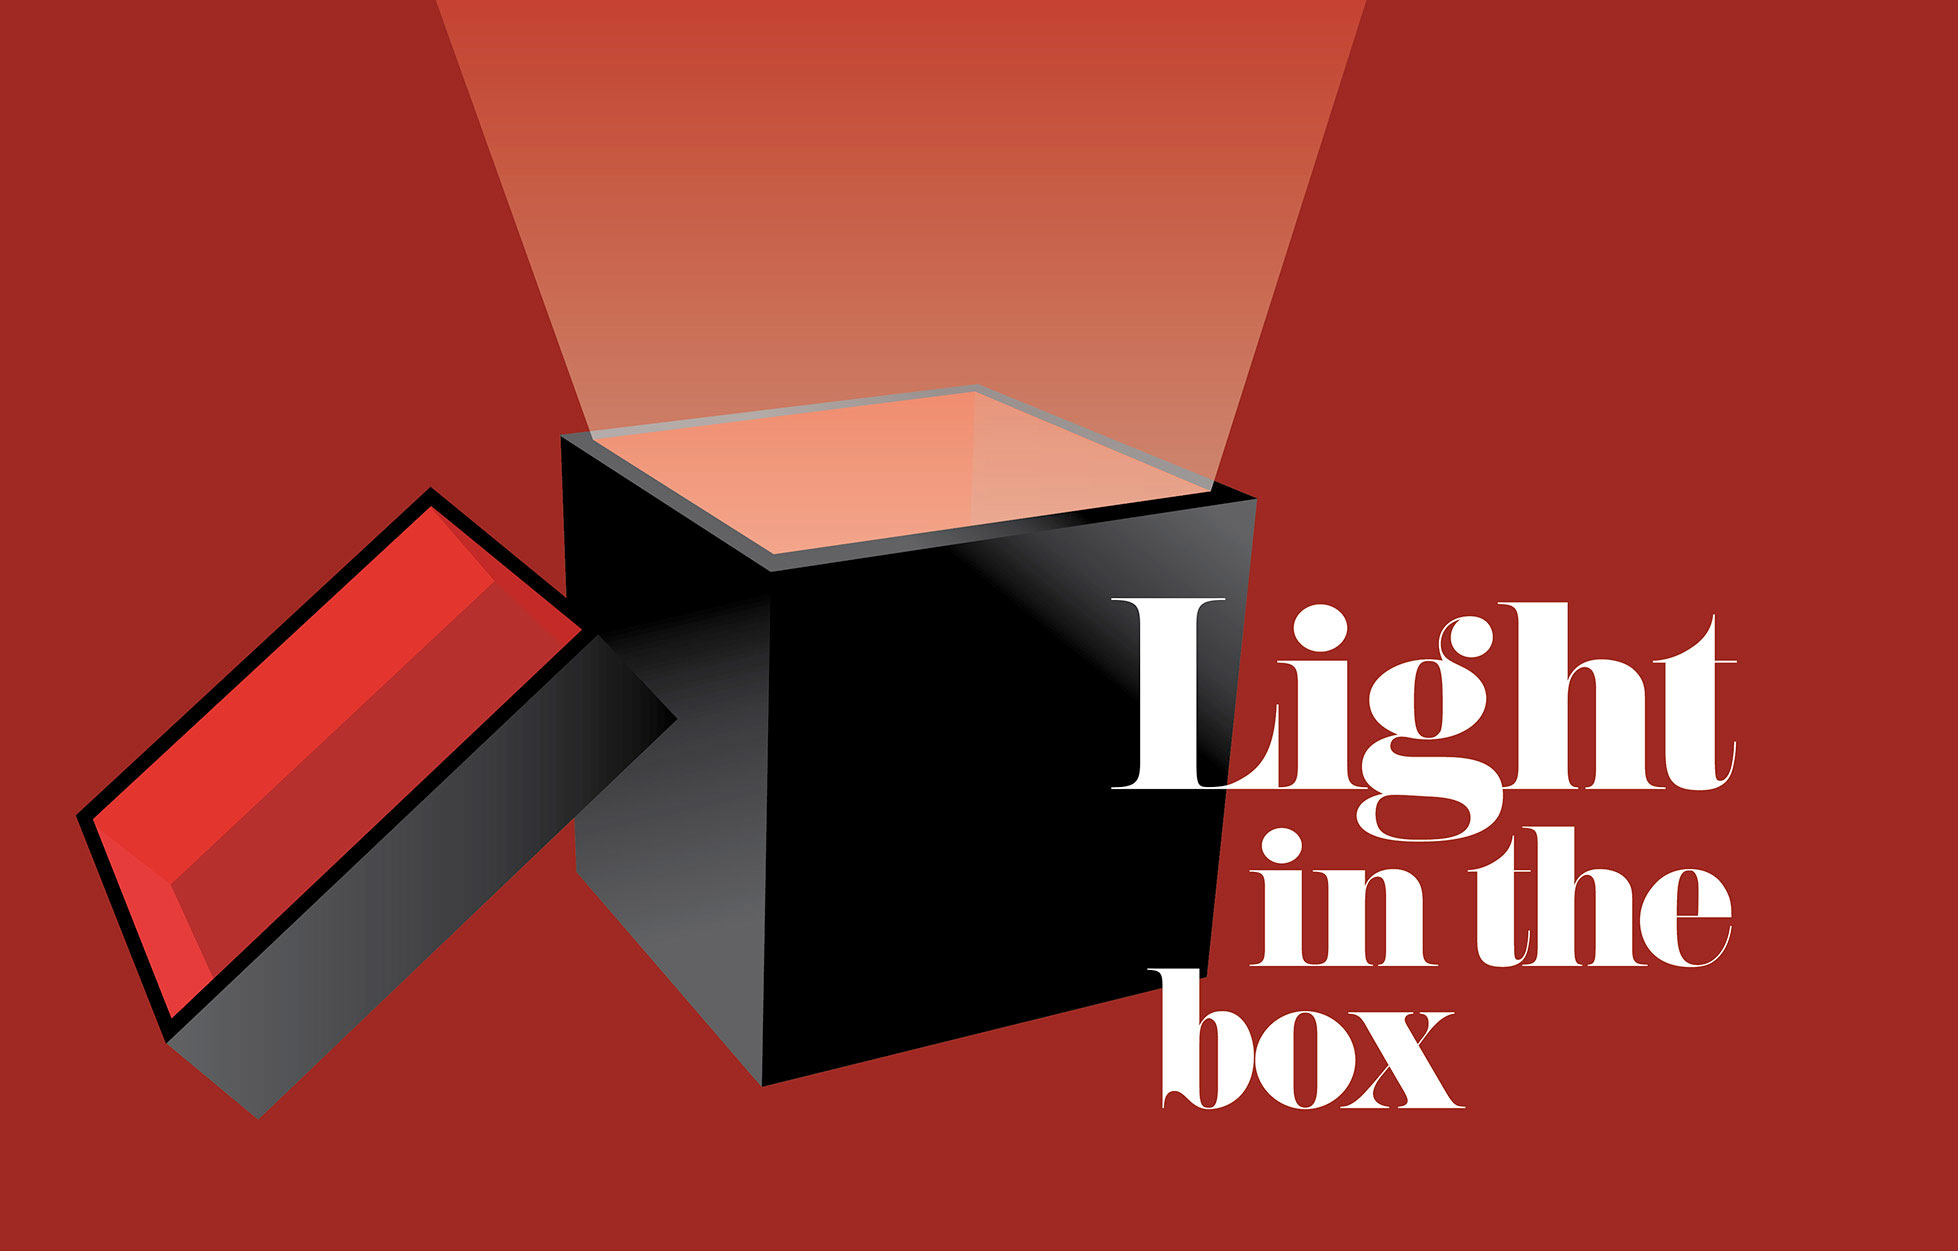 Ligth in the box